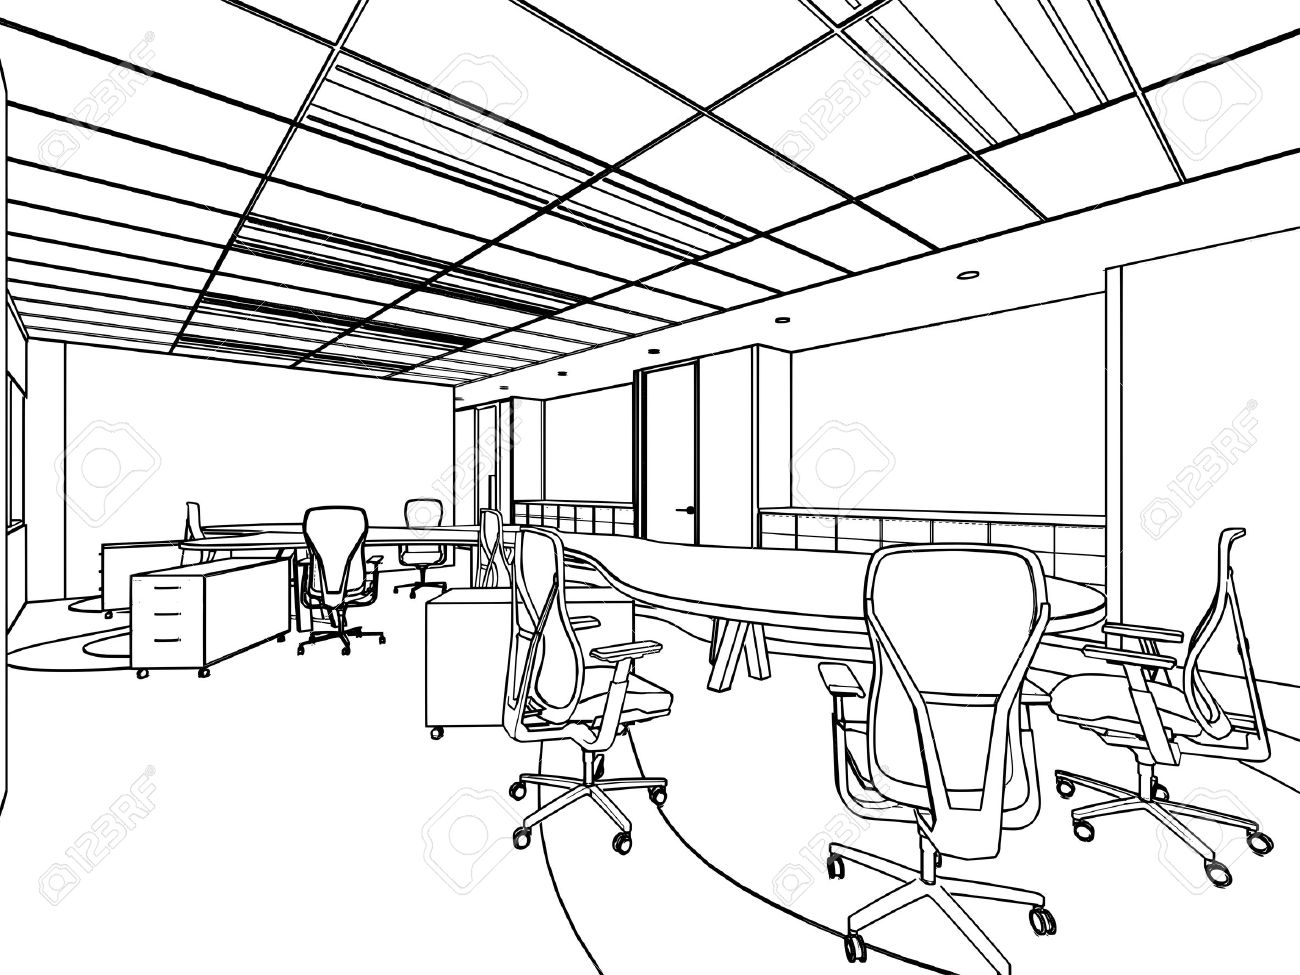 stock photo outline sketch drawing of a interior space office art drawing office